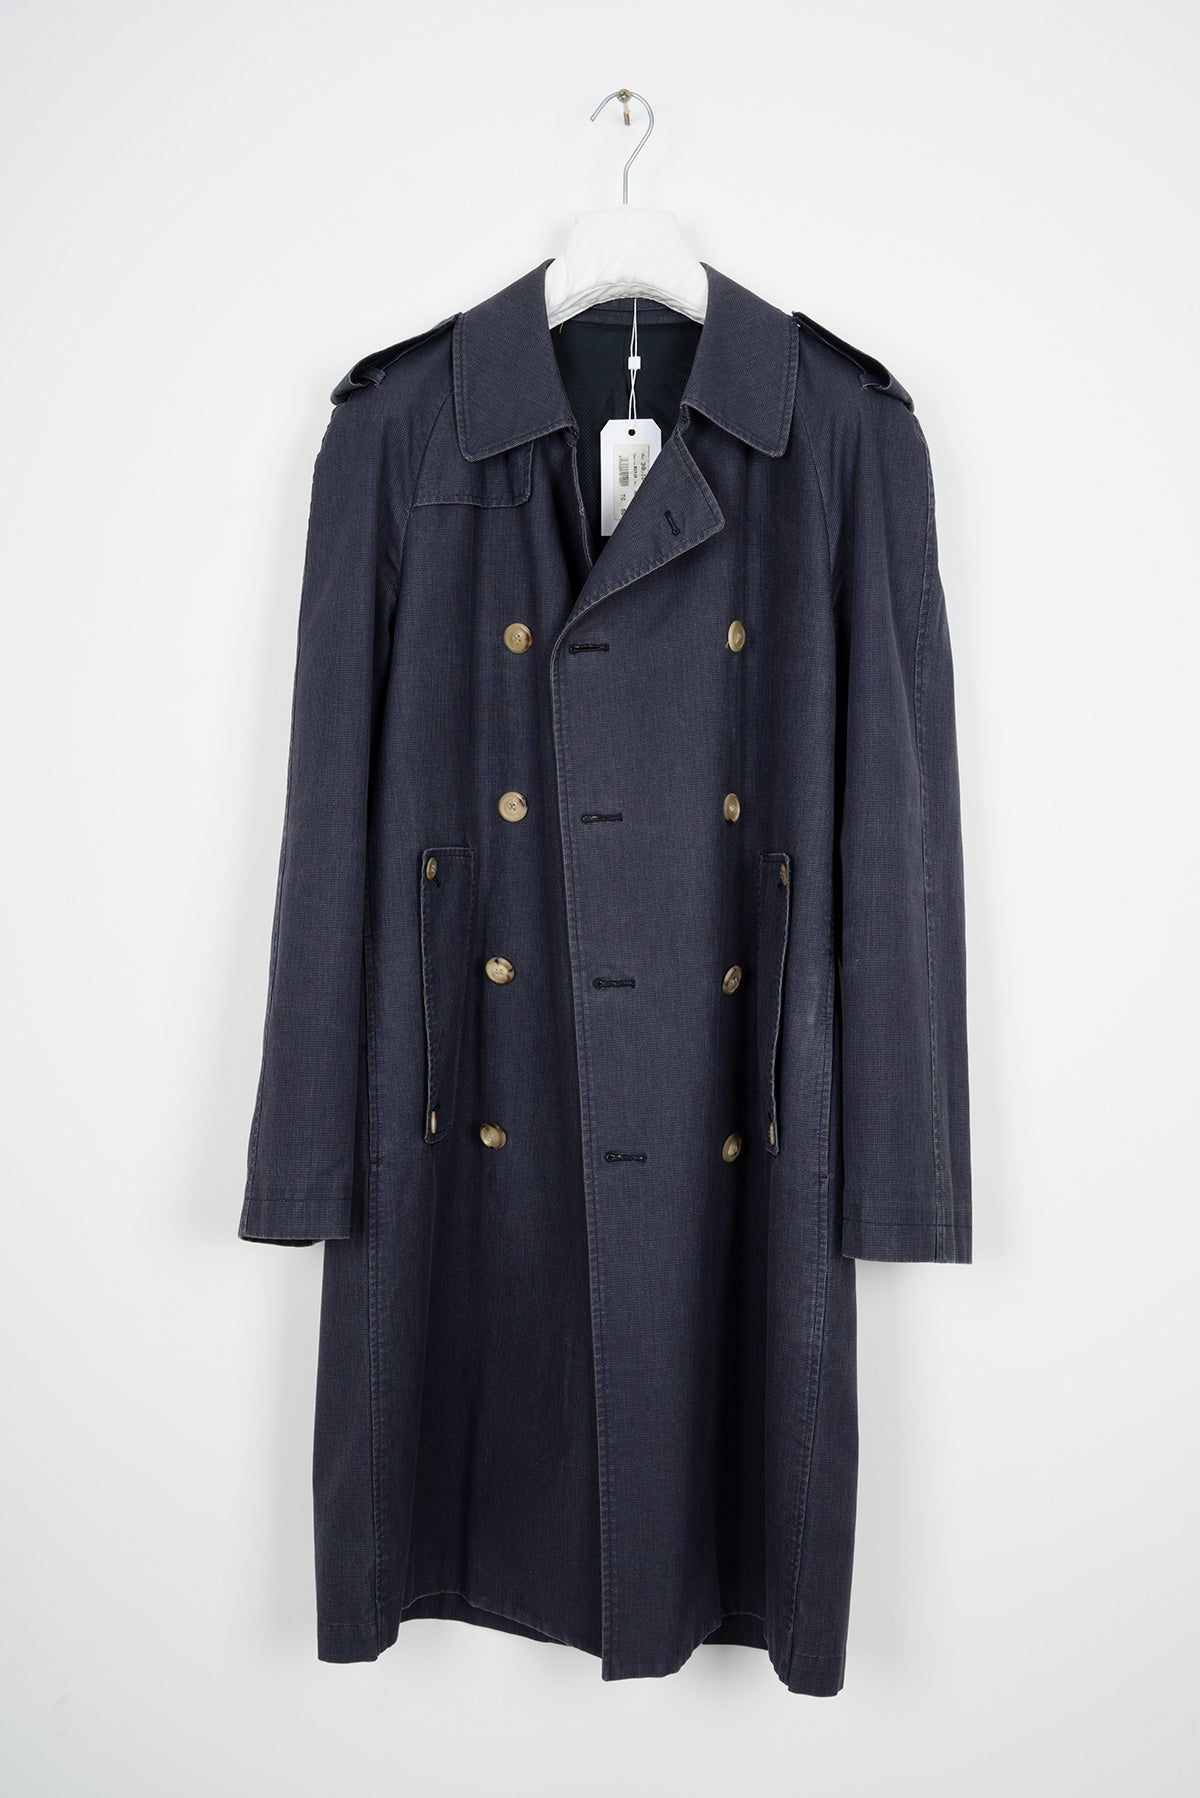 2004 S/S DOUBLE BREASTED RAIN COAT IN COATED DYED COTTON